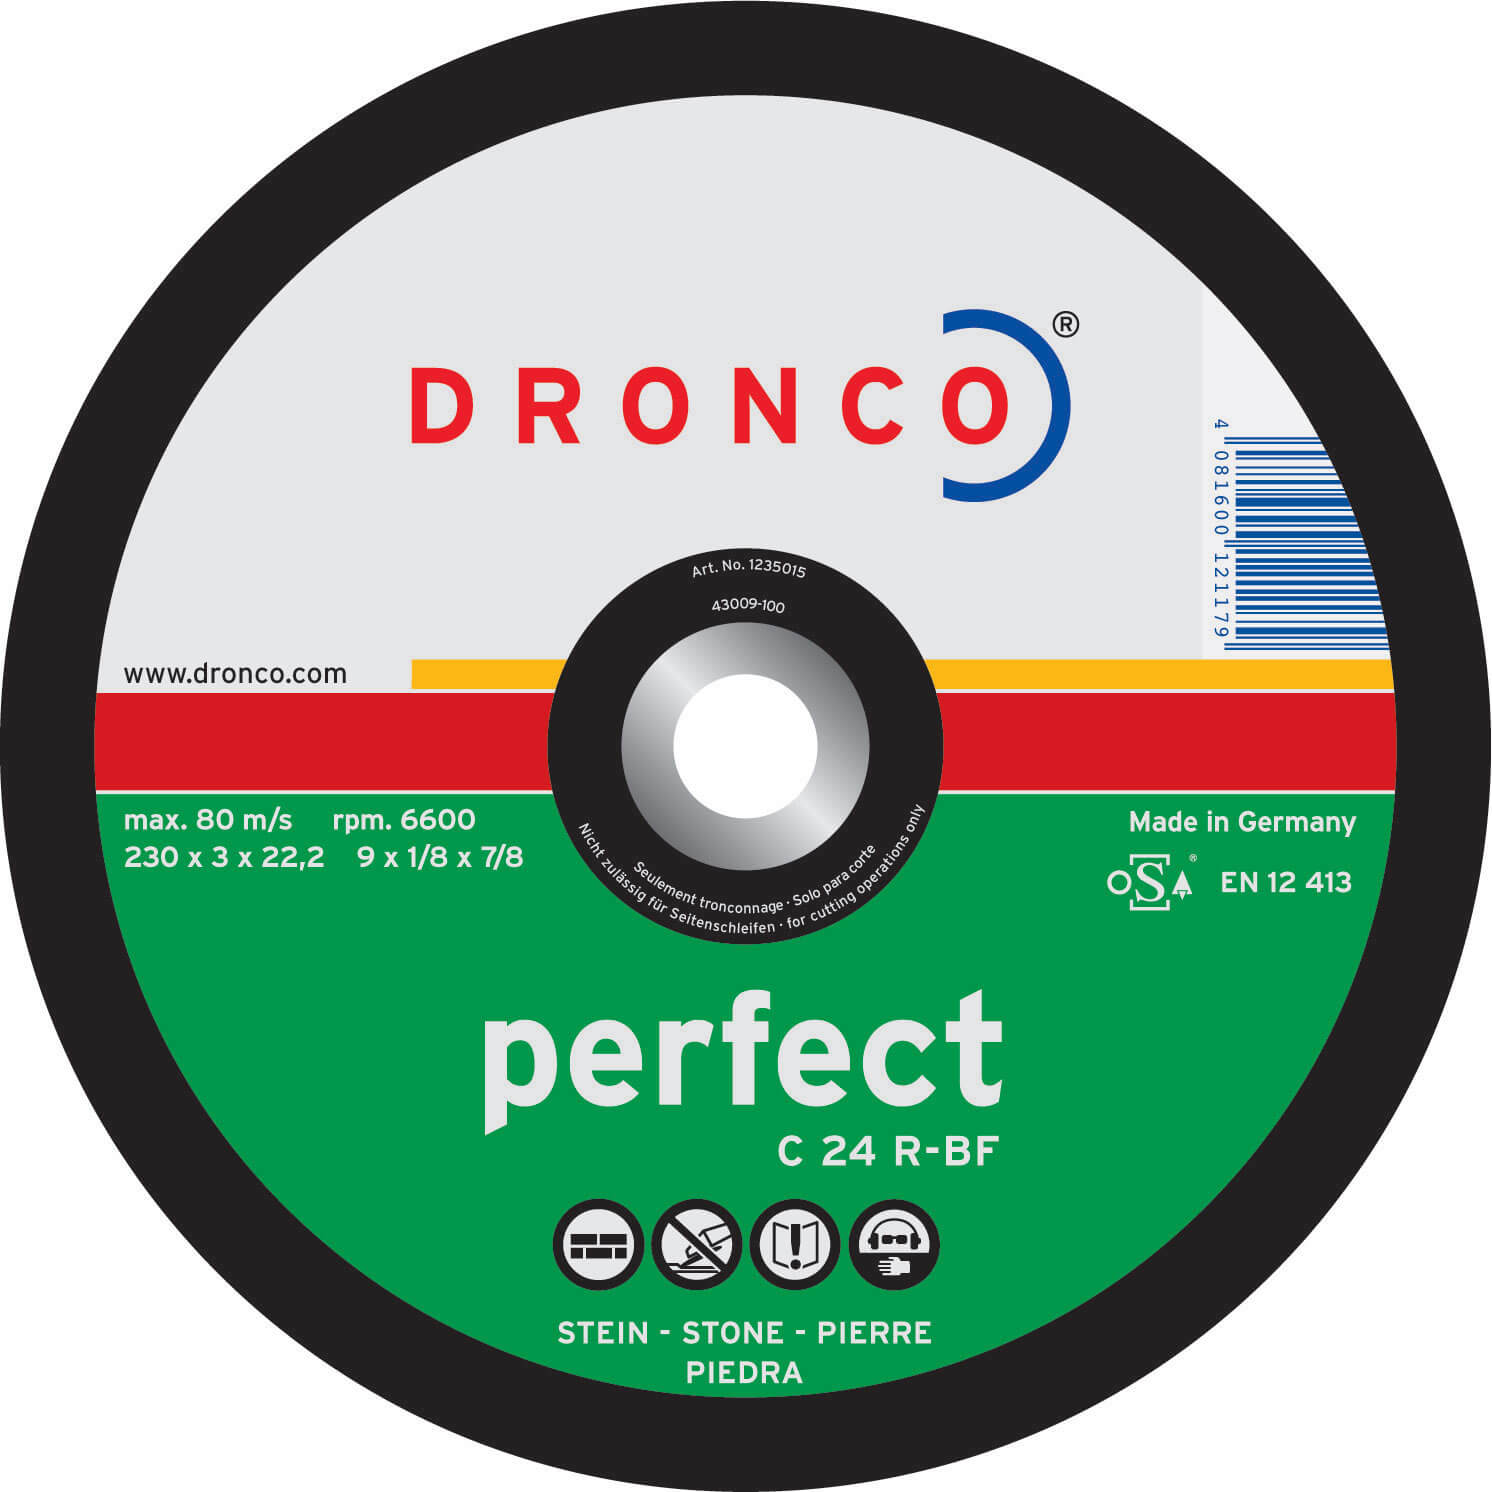 Image of Dronco C 24 R PERFECT Flat Stone Cutting Disc 125mm Pack of 1